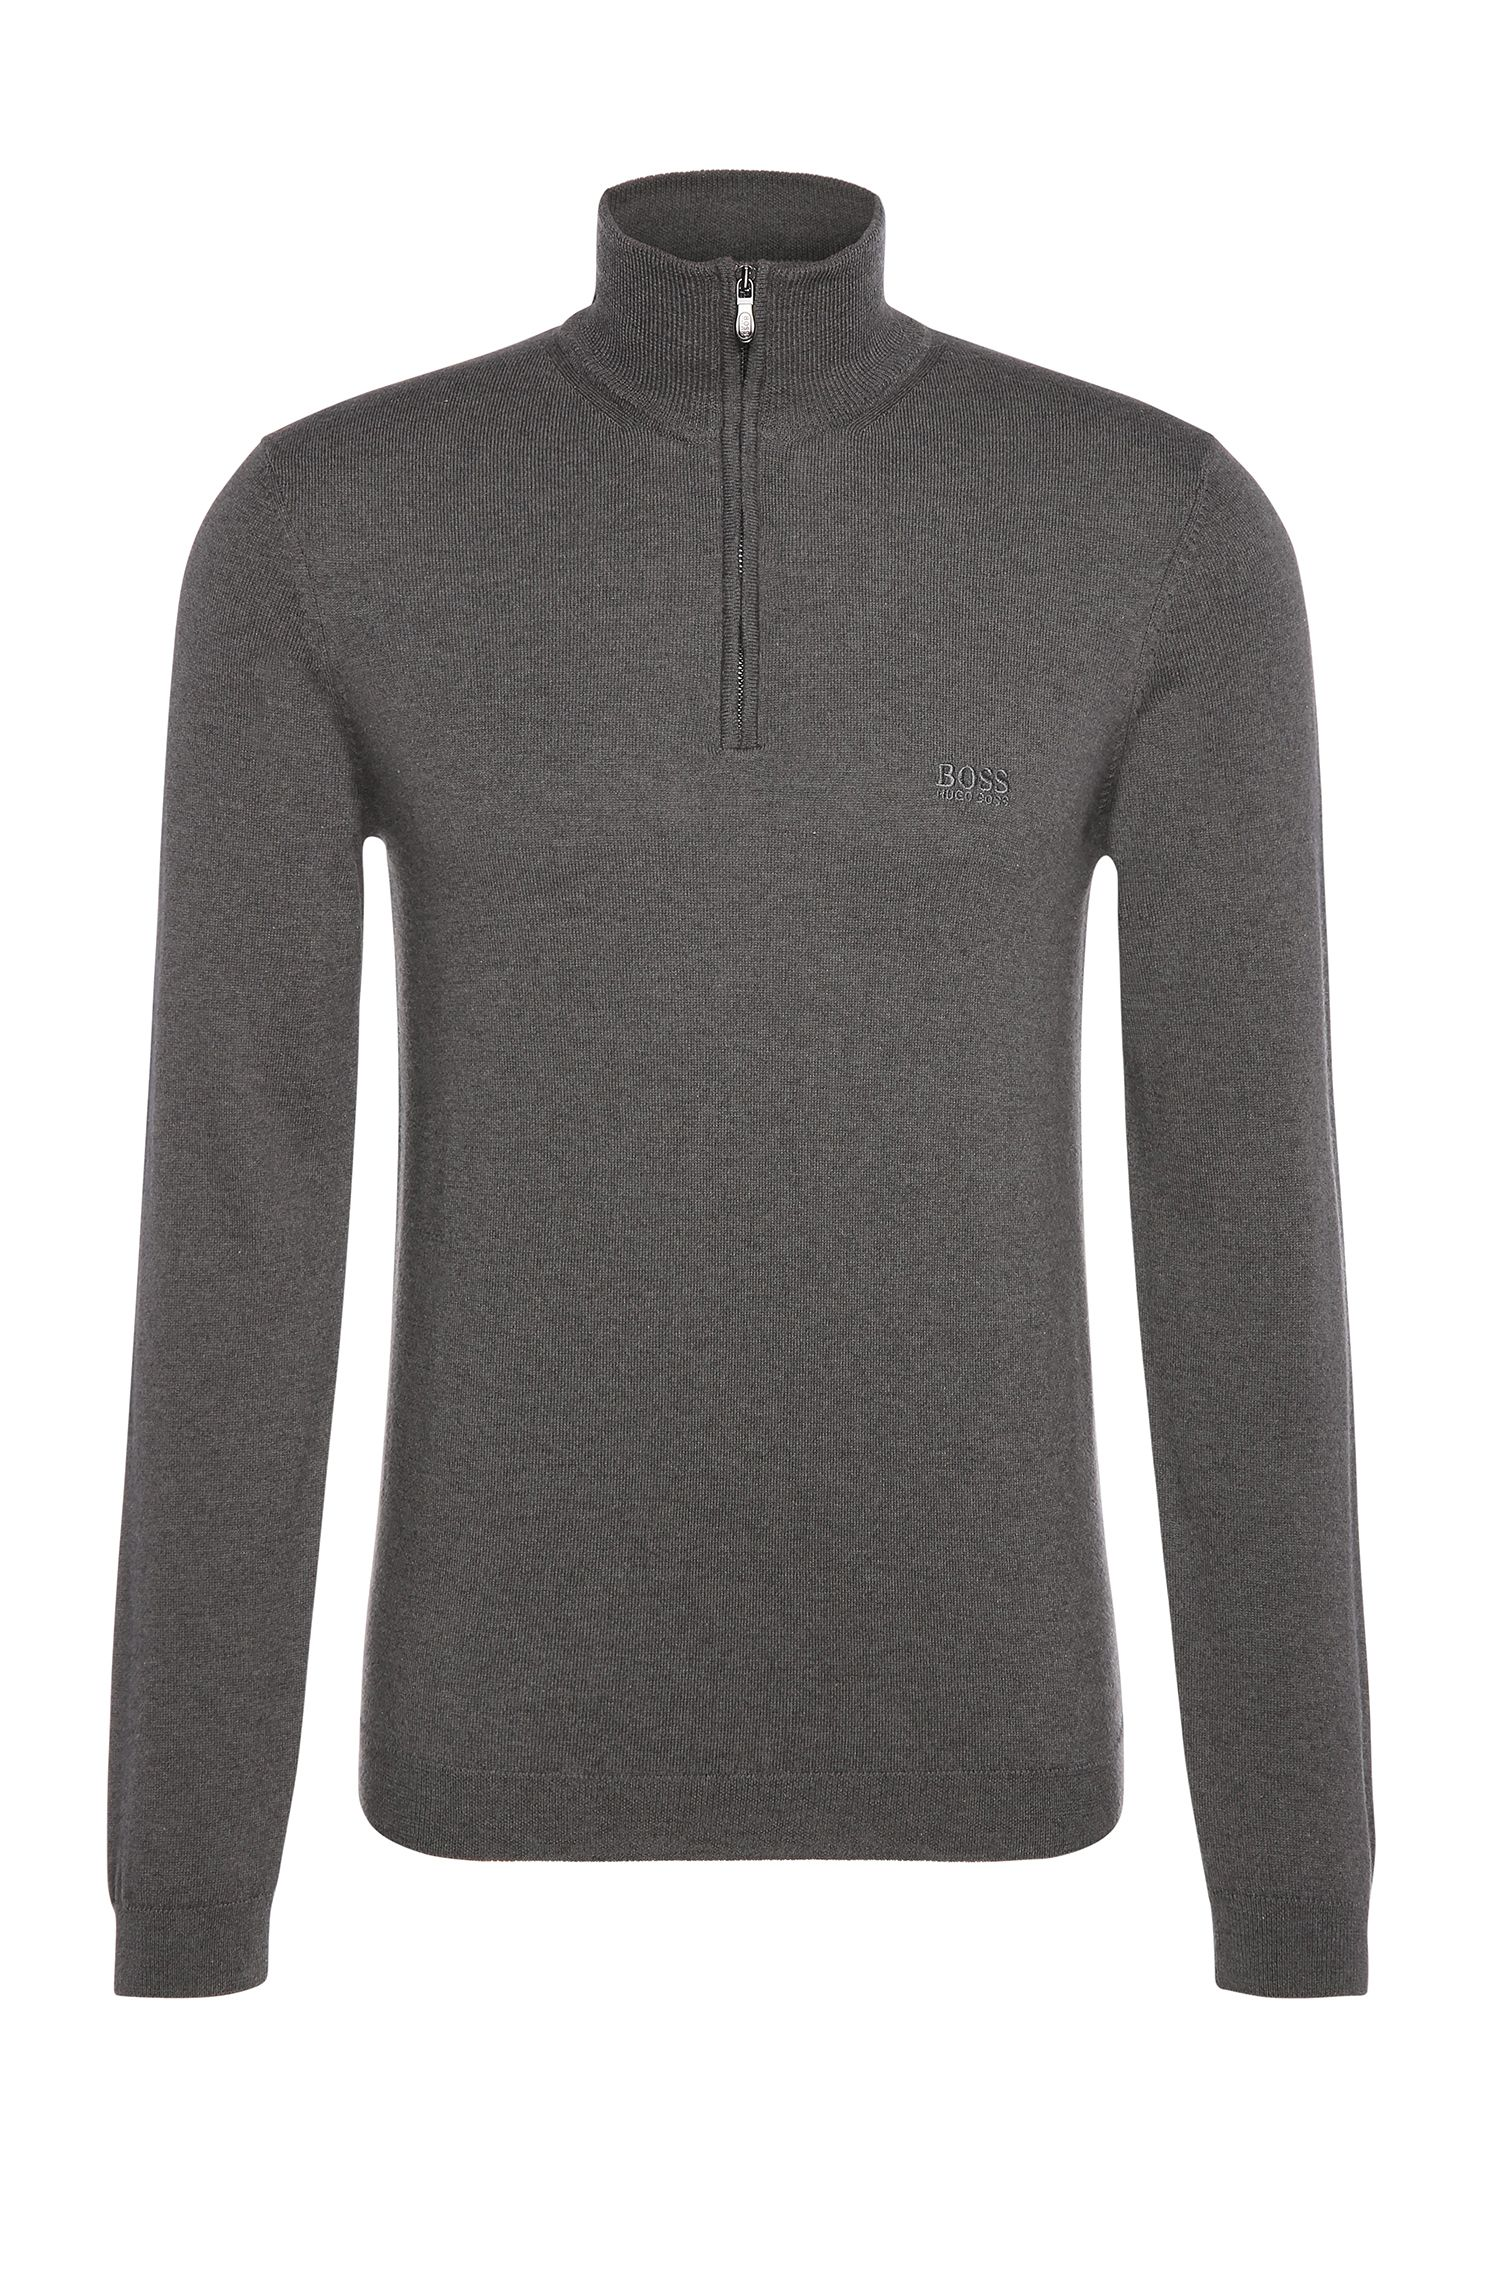 Turtleneck sweater in new wool blend with cotton: